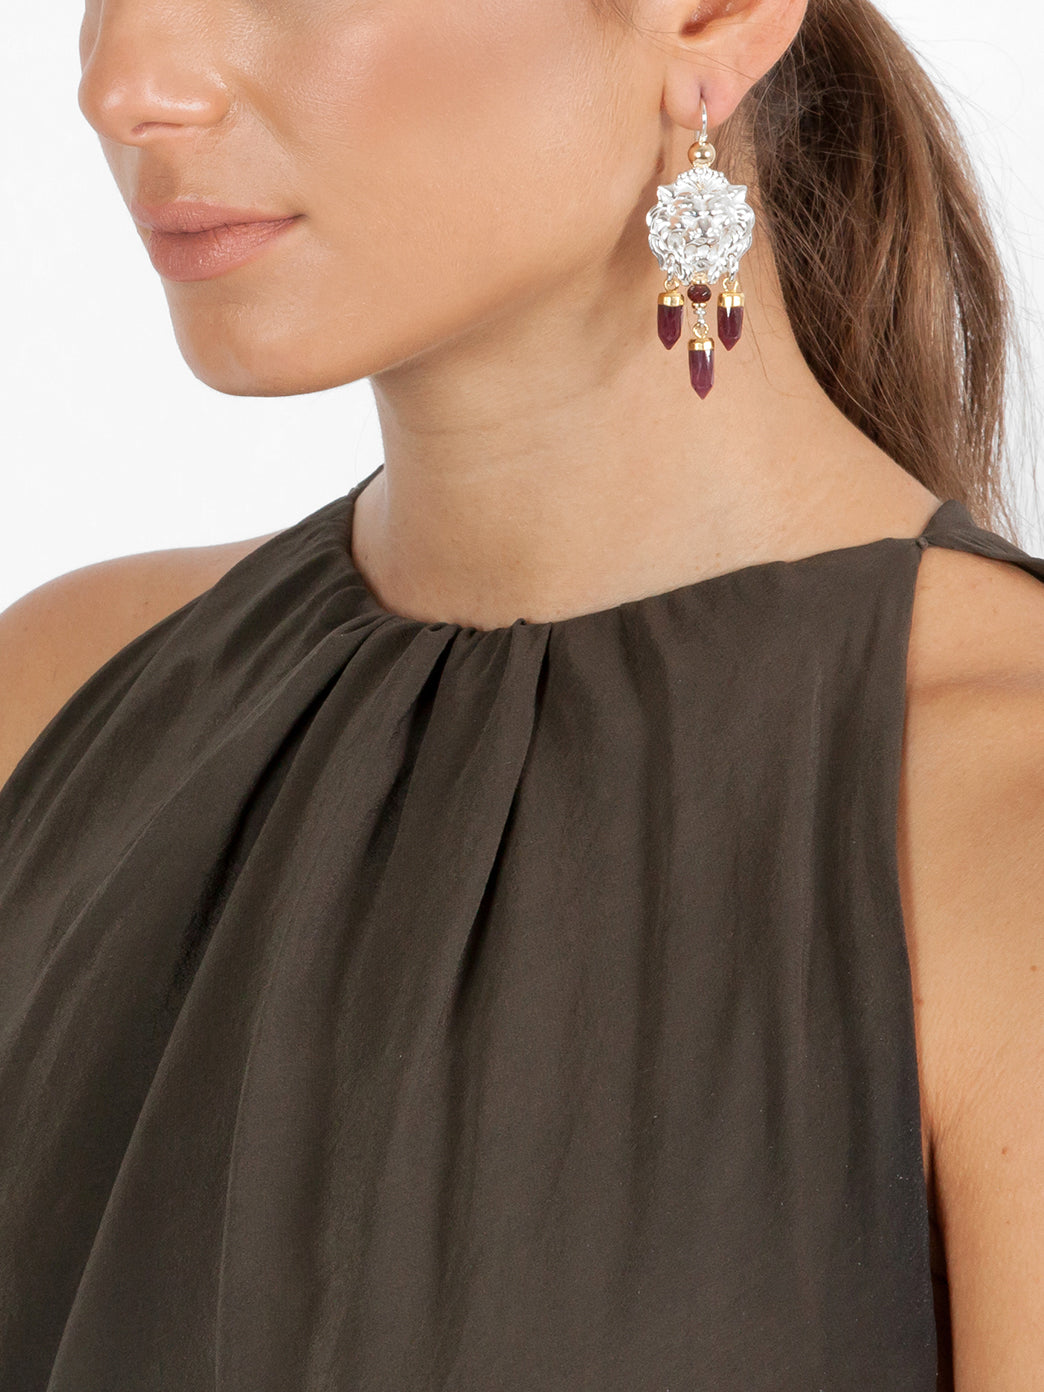 Fiorina Jewellery Taormina Earrings Garnet Model